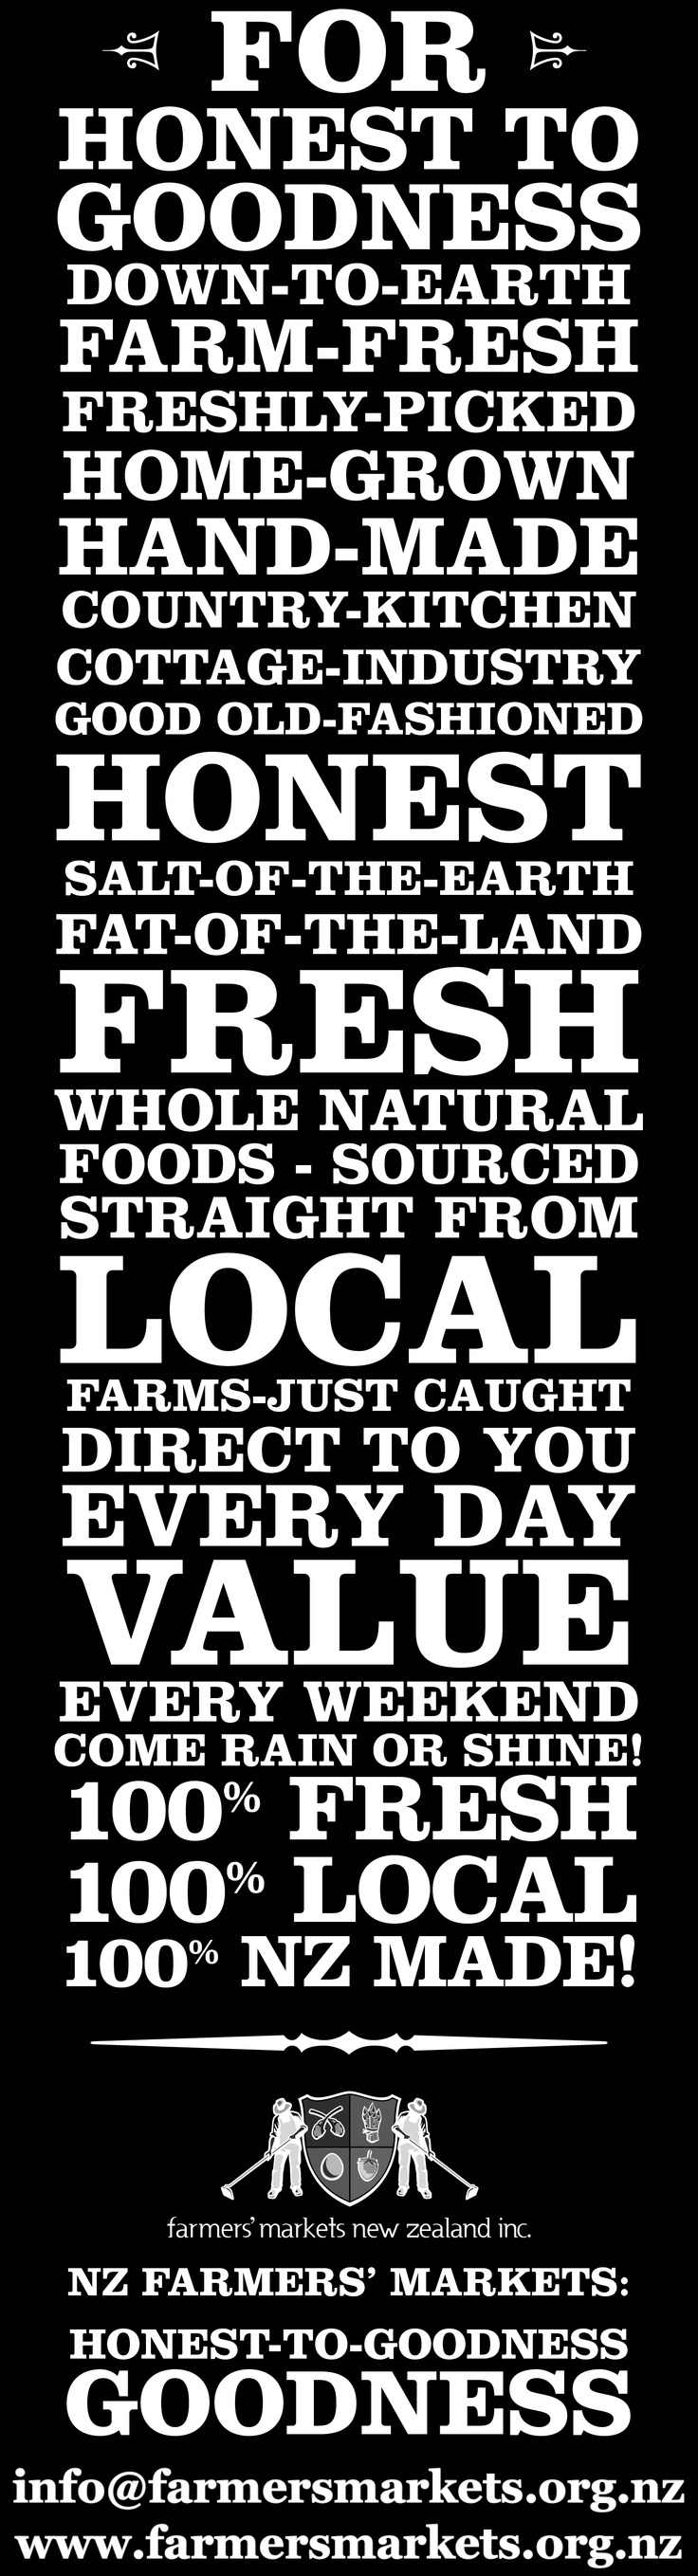 Love hitting the Kerikeri Farmers' Market in Saturdays for fresh veges, artisan bread and MAX coffee as well as seasonal goodies and treats! A great all year weekend coffee spot. www.driftwoodnz.com